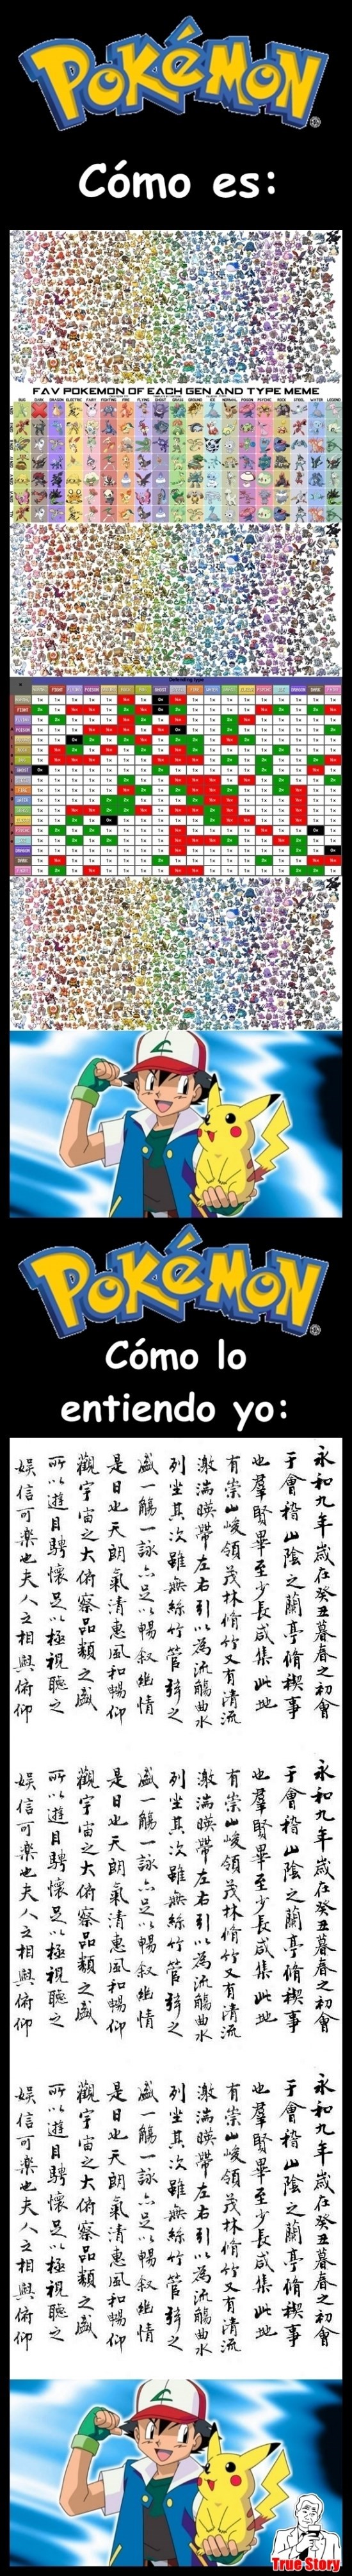 pokemon como es